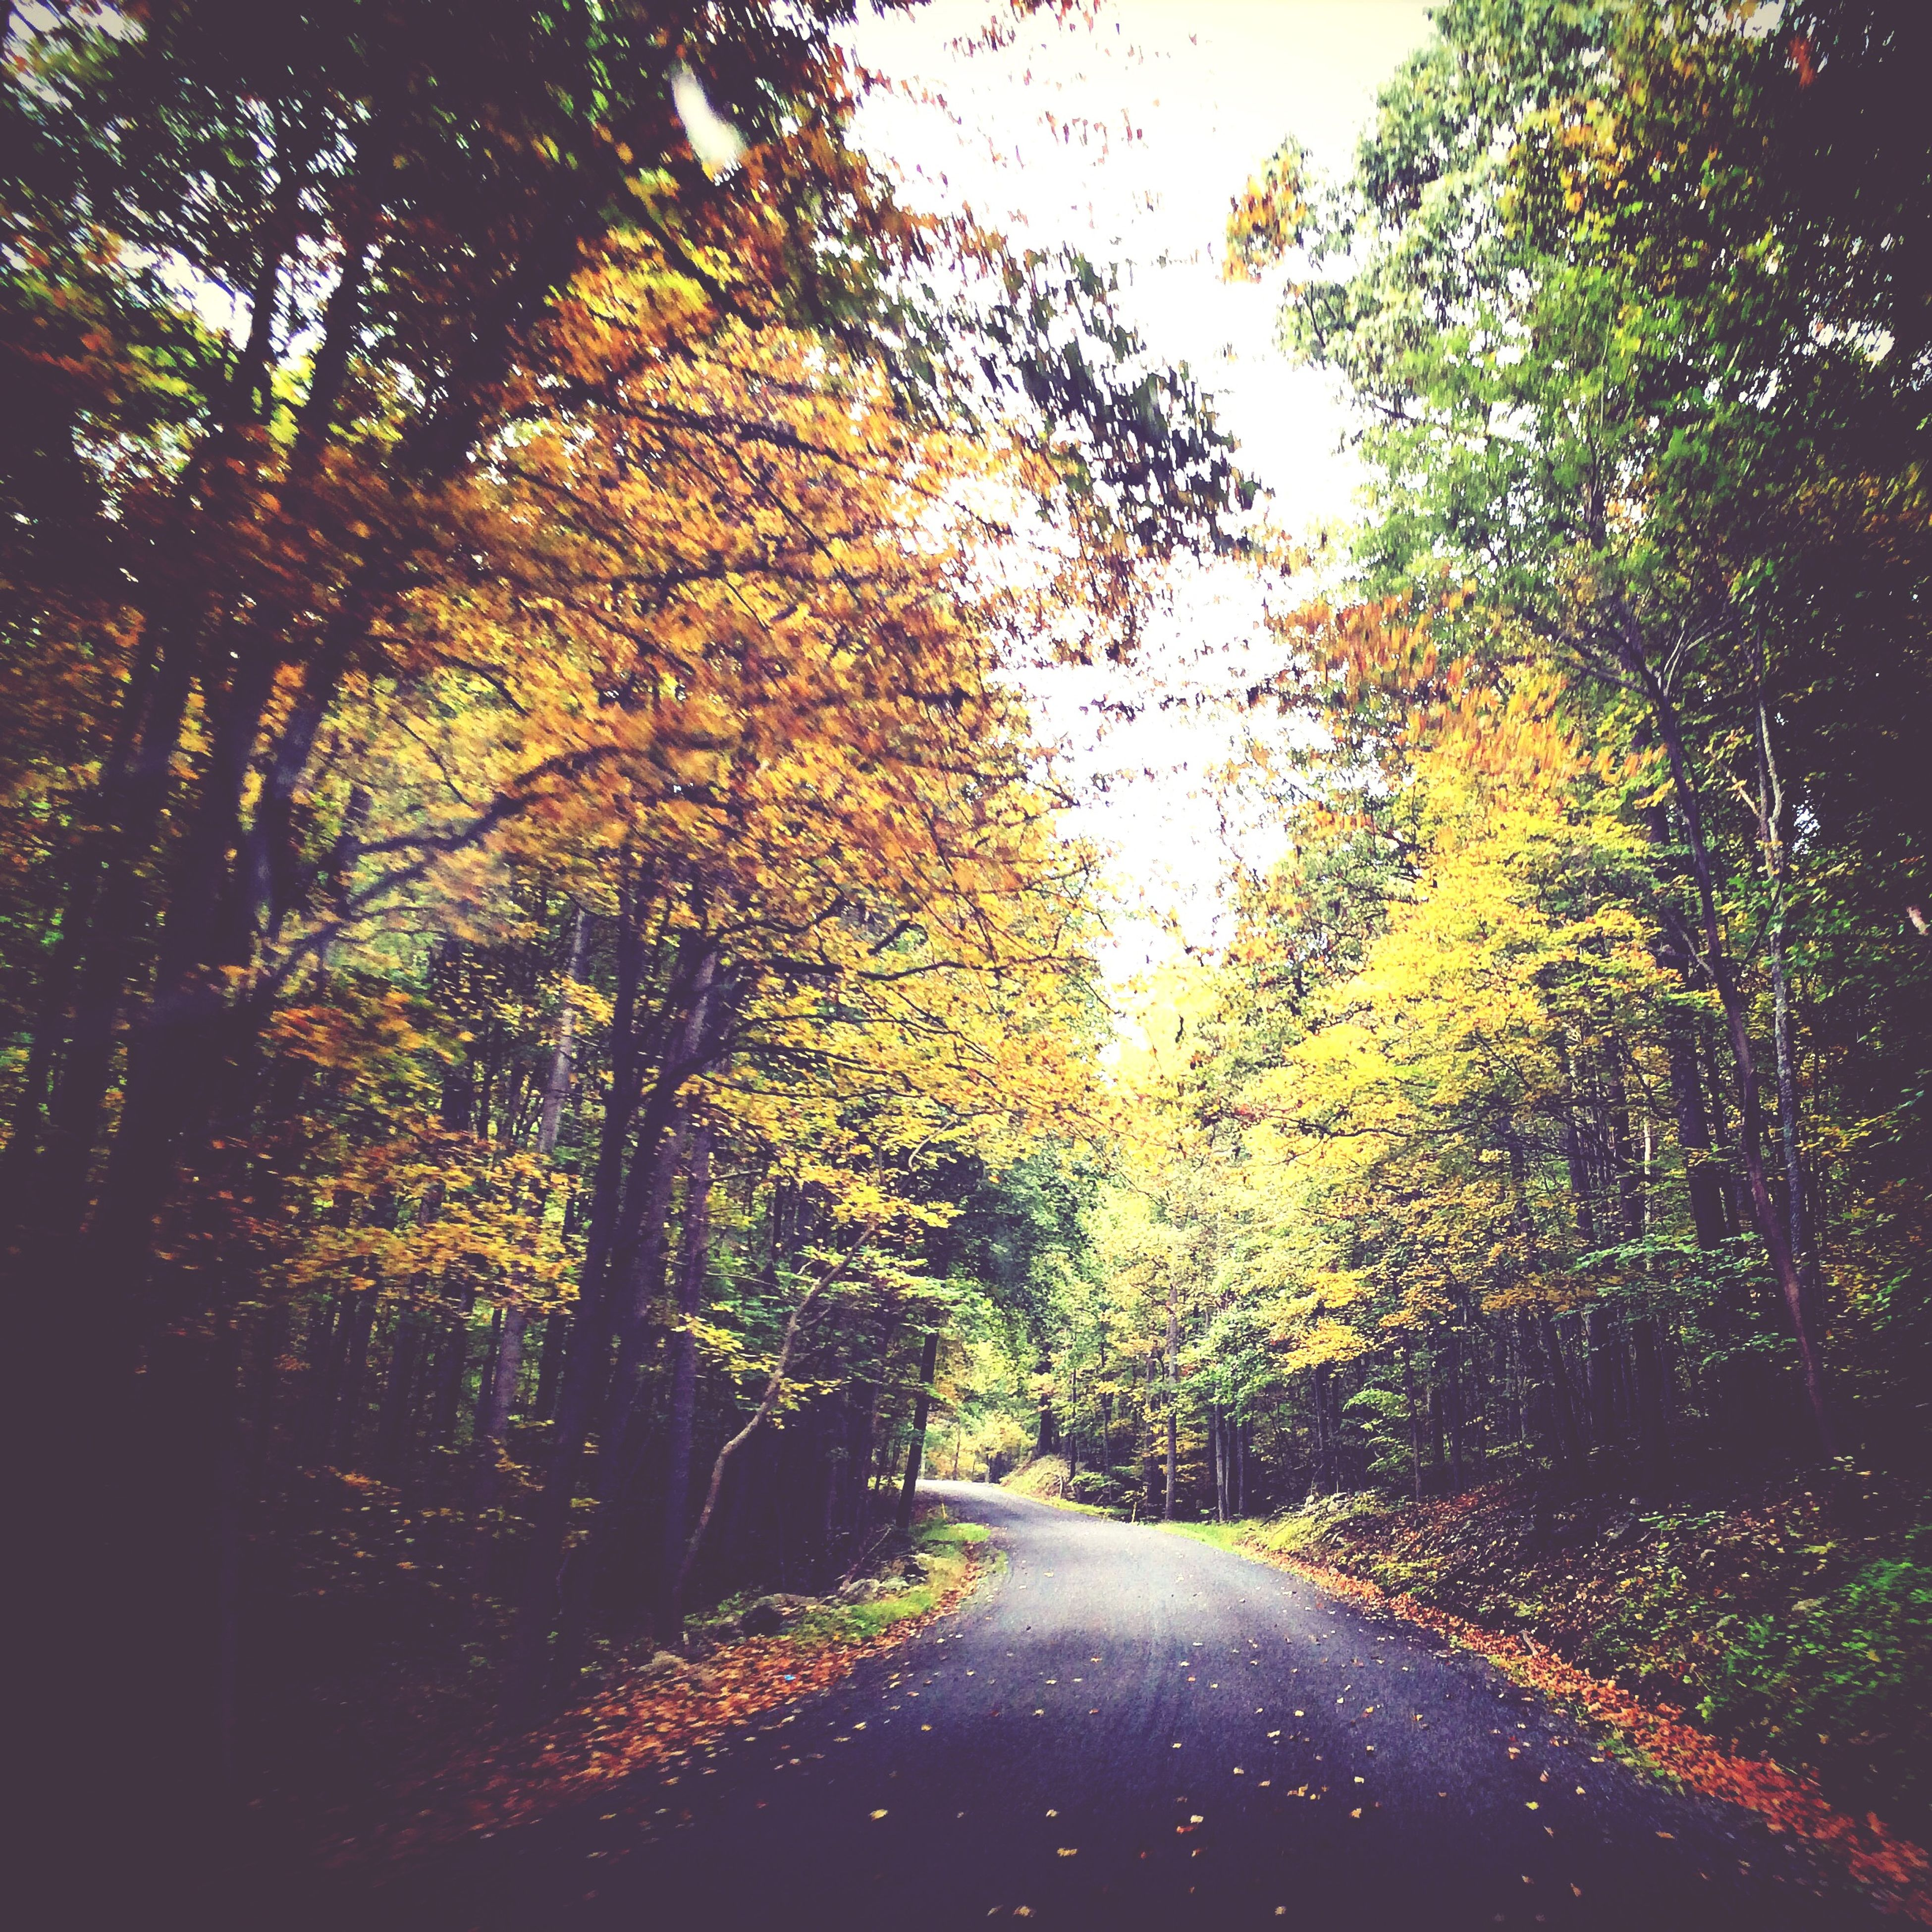 tree, the way forward, road, diminishing perspective, tranquility, autumn, transportation, nature, vanishing point, growth, change, tranquil scene, beauty in nature, season, empty road, street, scenics, country road, outdoors, no people